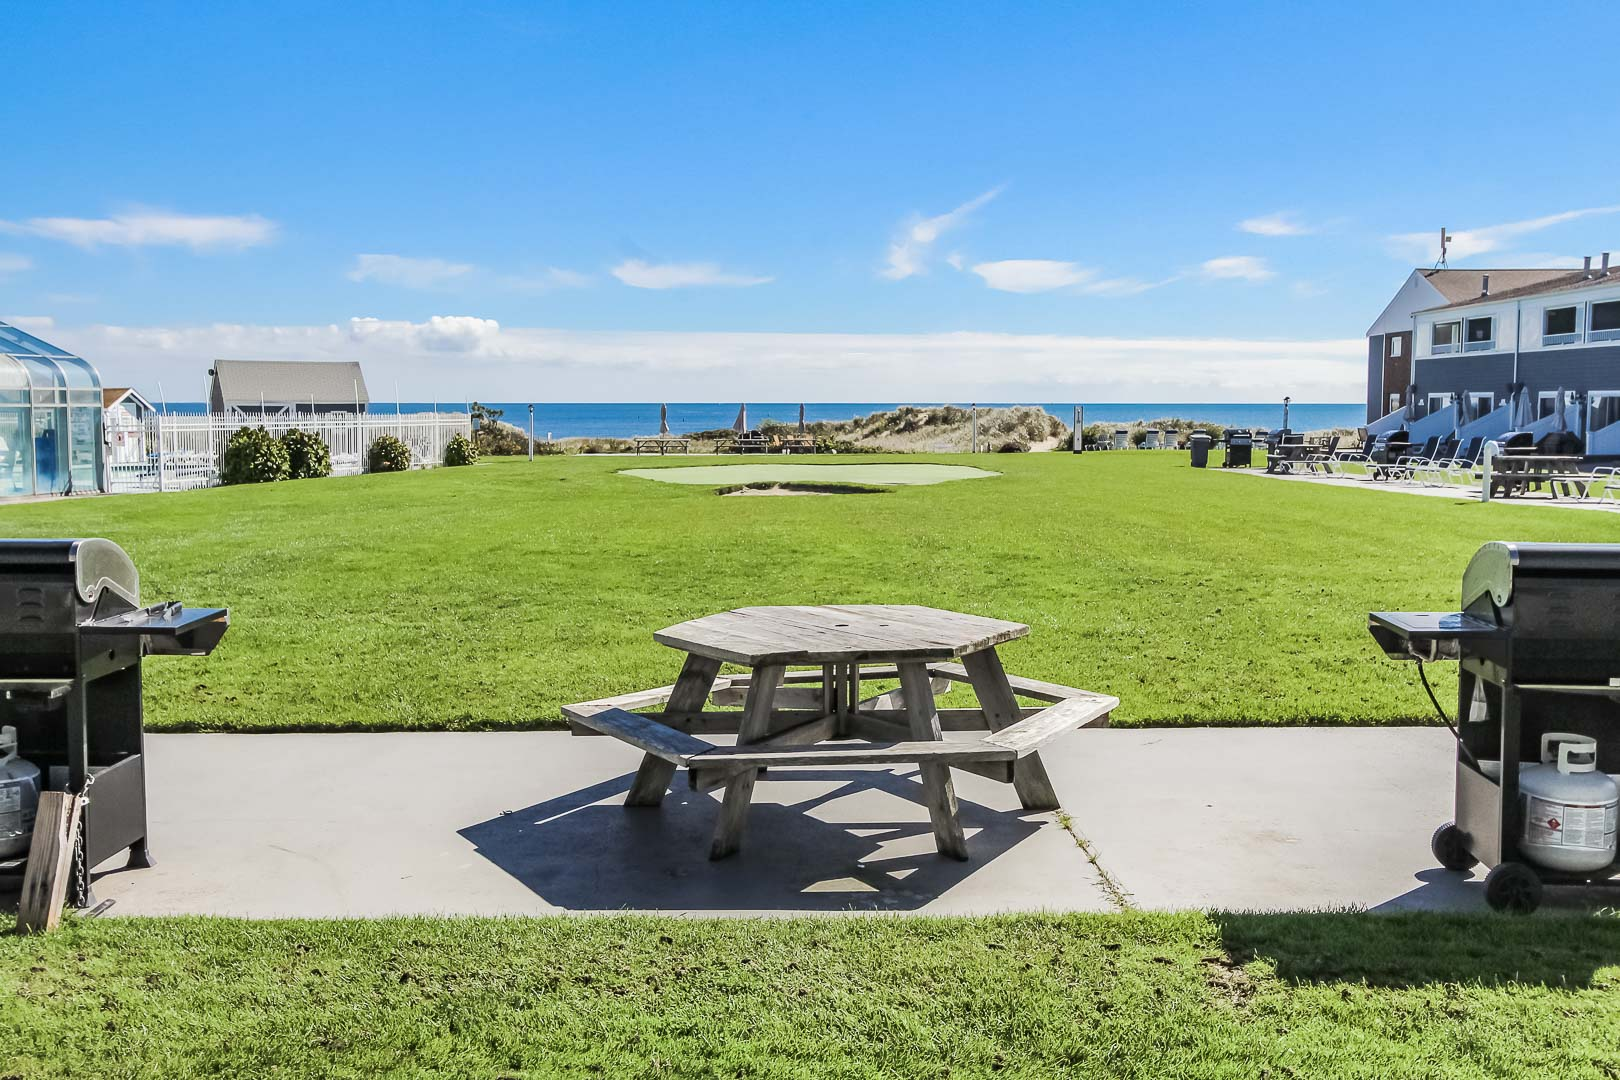 A relaxing patio deck overseeing the ocean at VRI's Edgewater Beach Resort in Massachusetts.